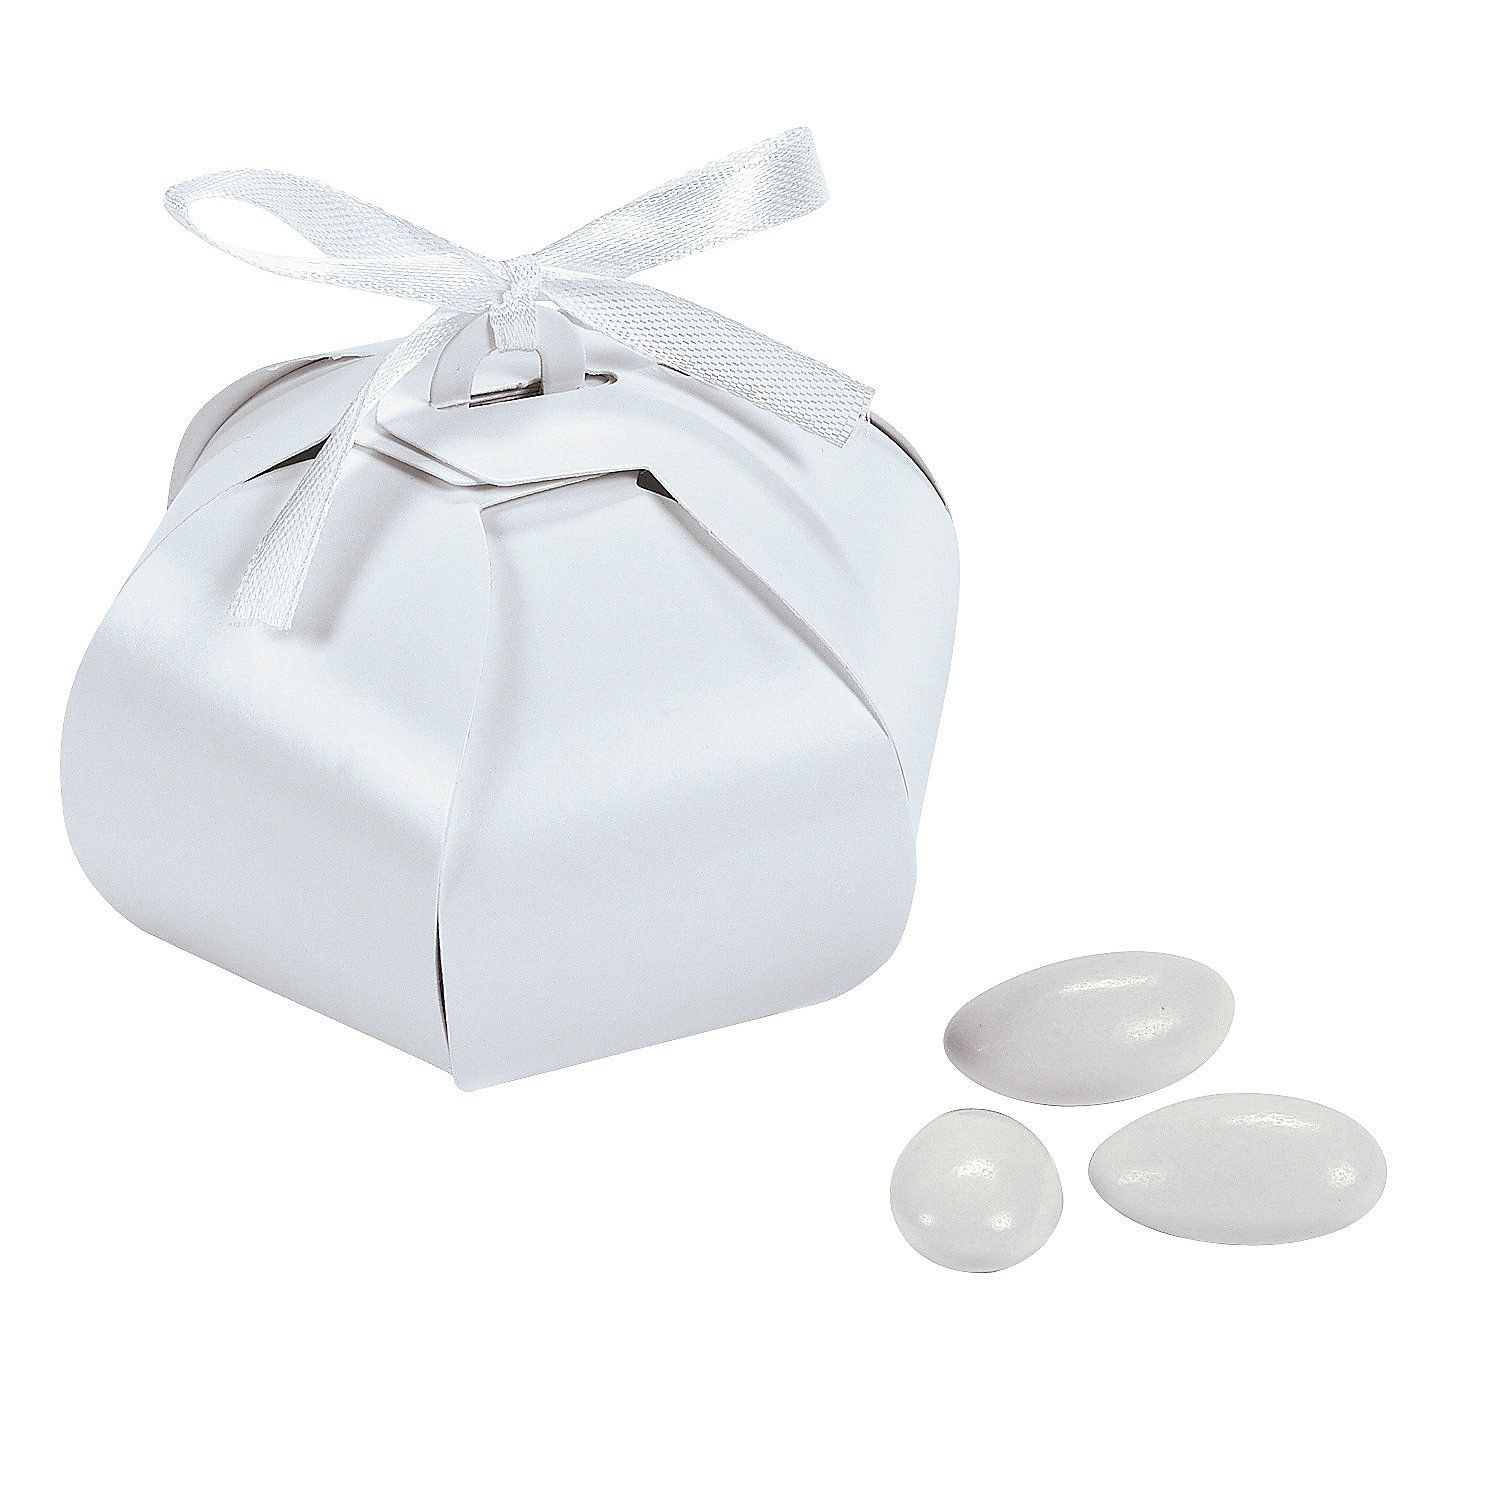 White+Wedding+Sphere+Favor+Boxes+-+OrientalTrading.com